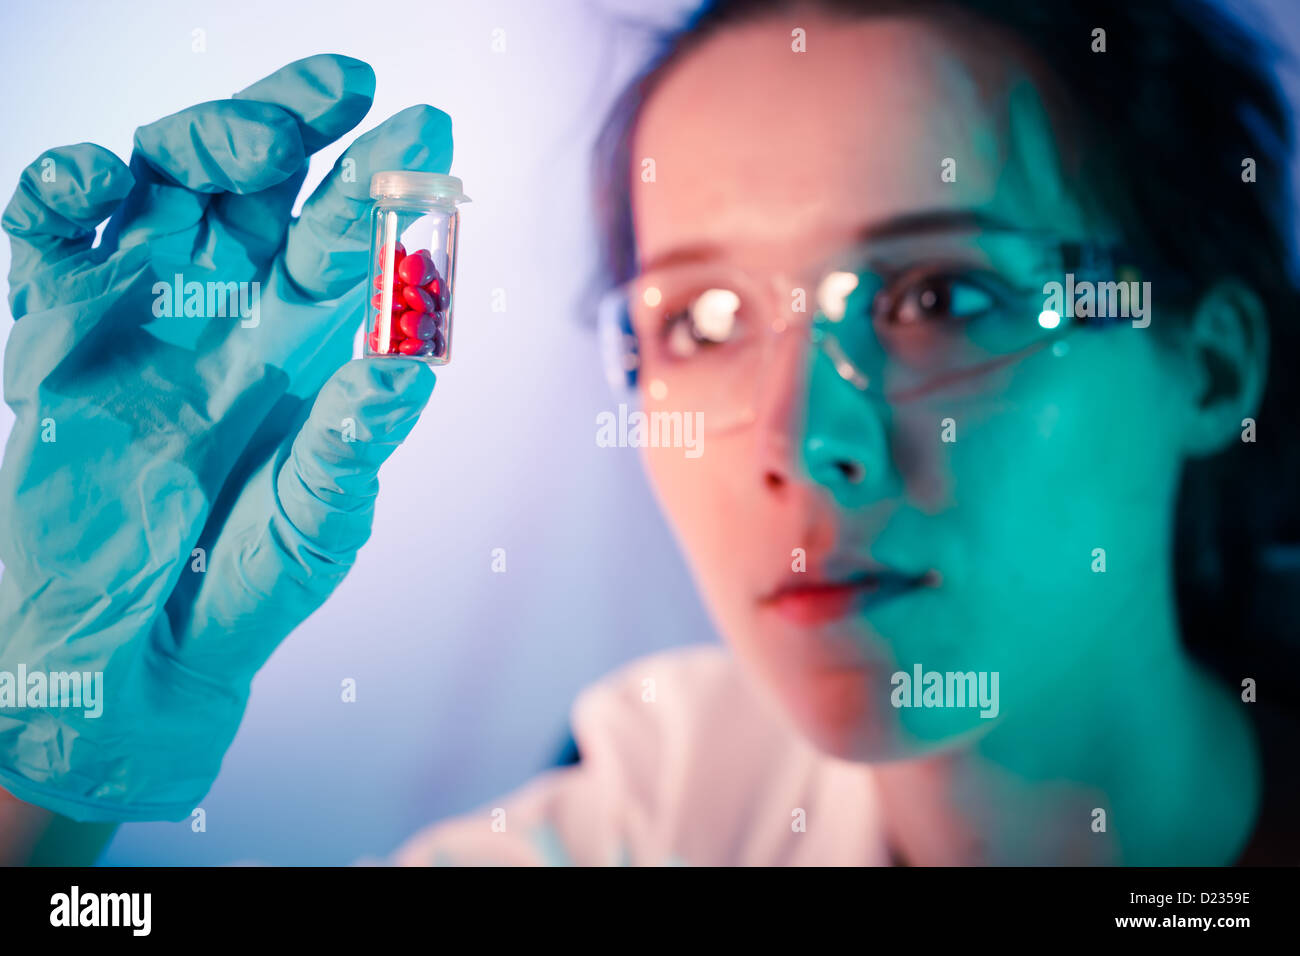 Laboratory assistant holds a bottle of pills in her hand - Stock Image